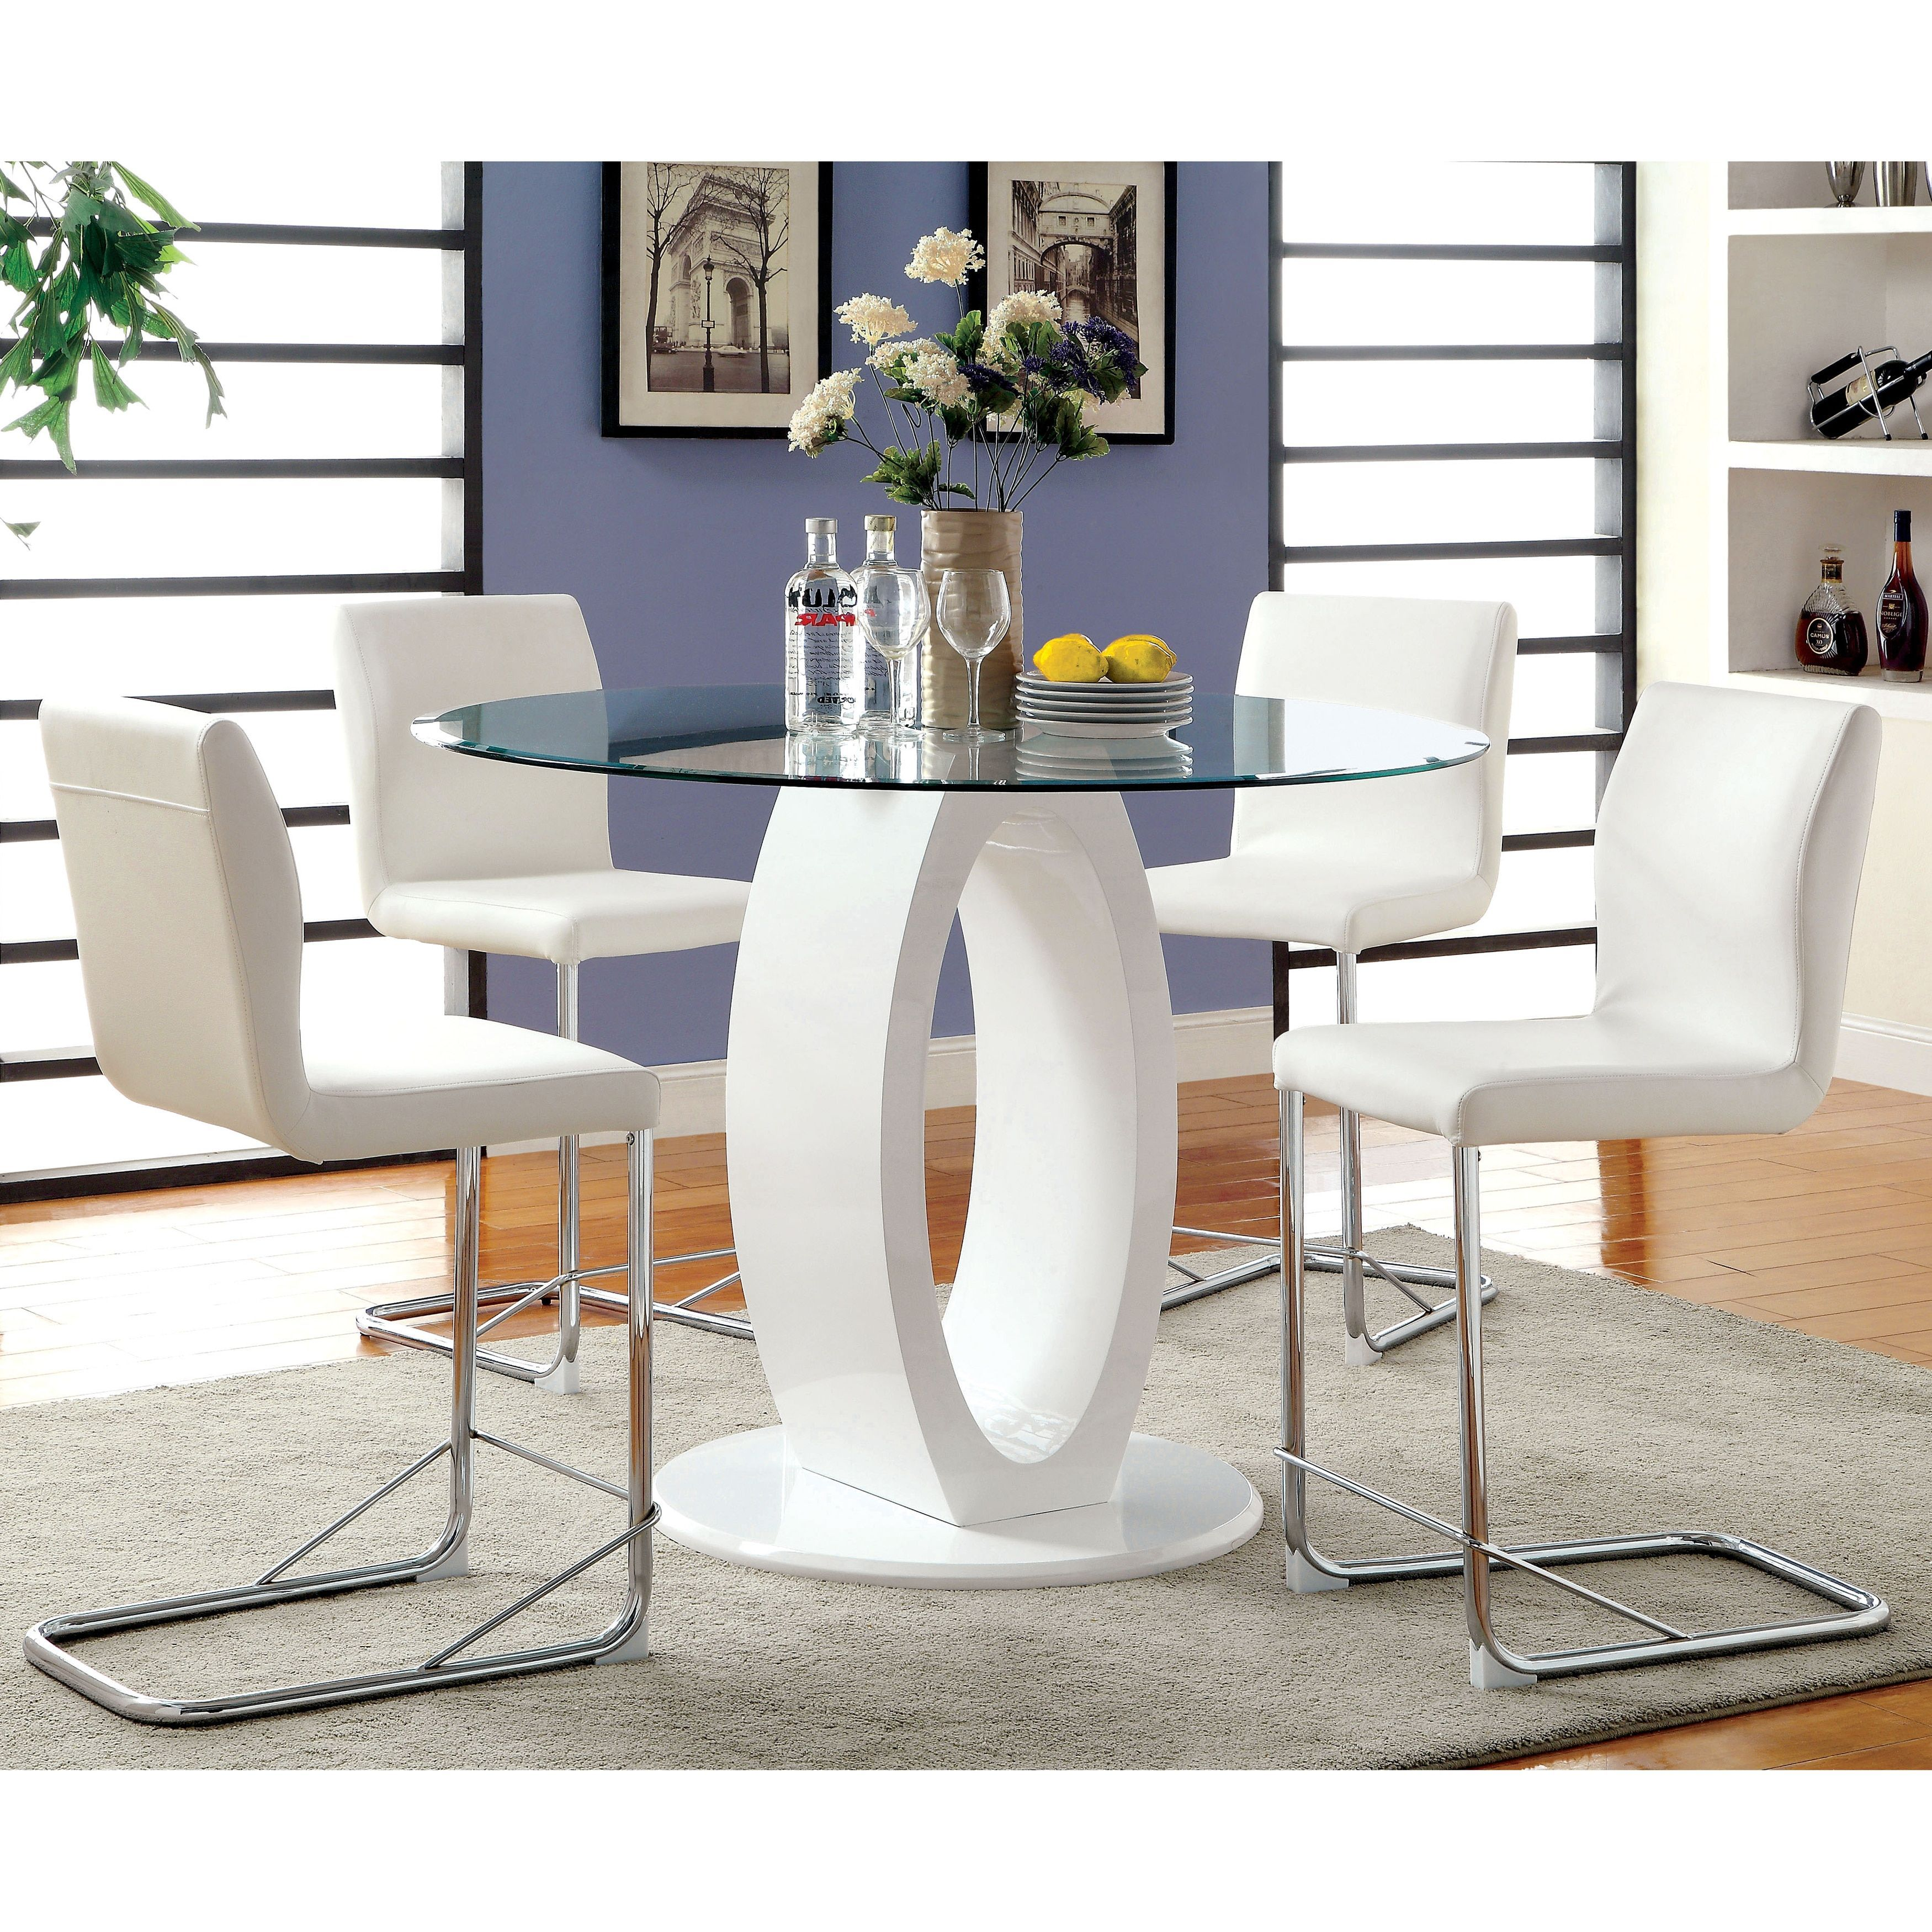 Furniture Of America Olgette Contemporary 5 Piece High Gloss Counter